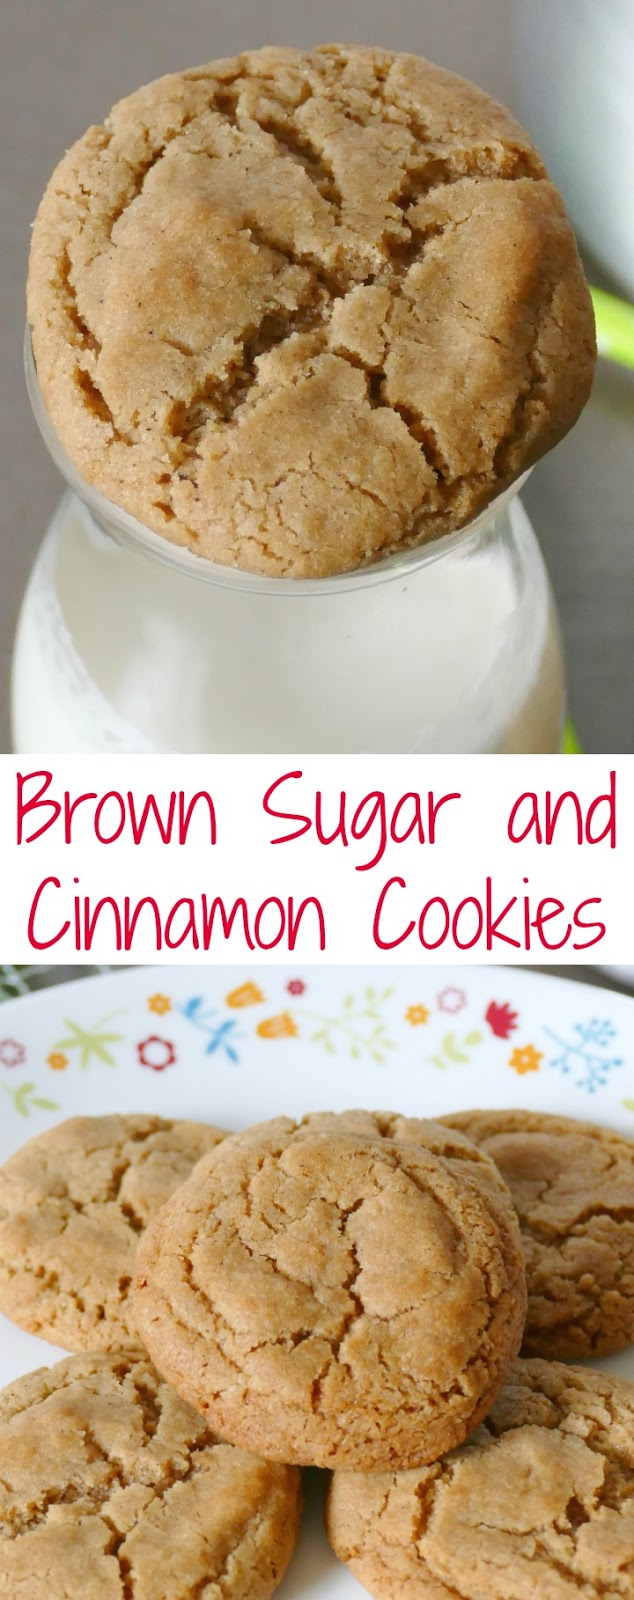 Cookies With Cinnamon And Sugar